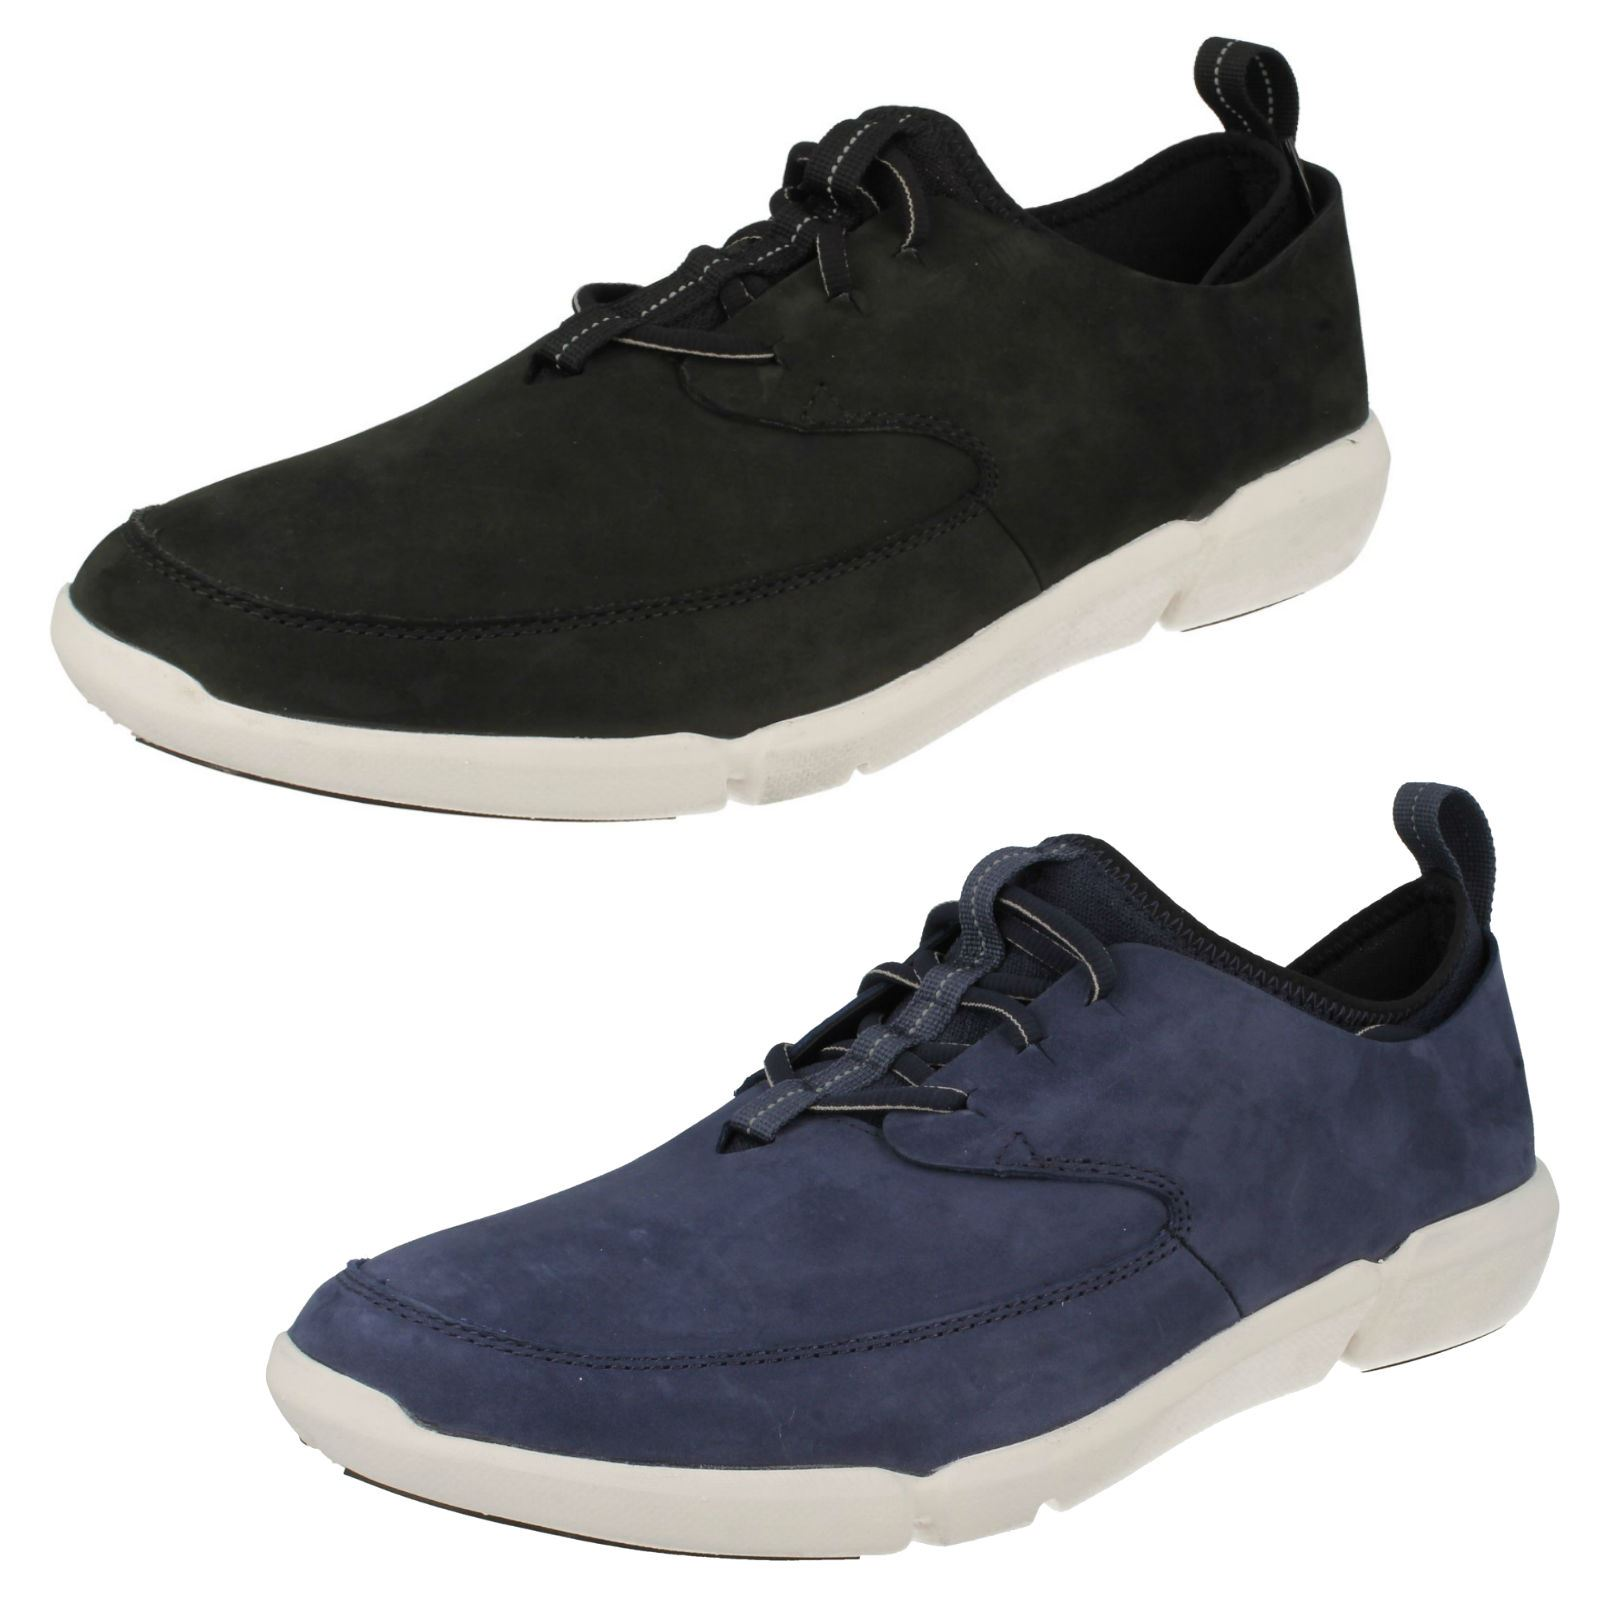 Mens Clarks Lightweight Casual shoes Triflow Form